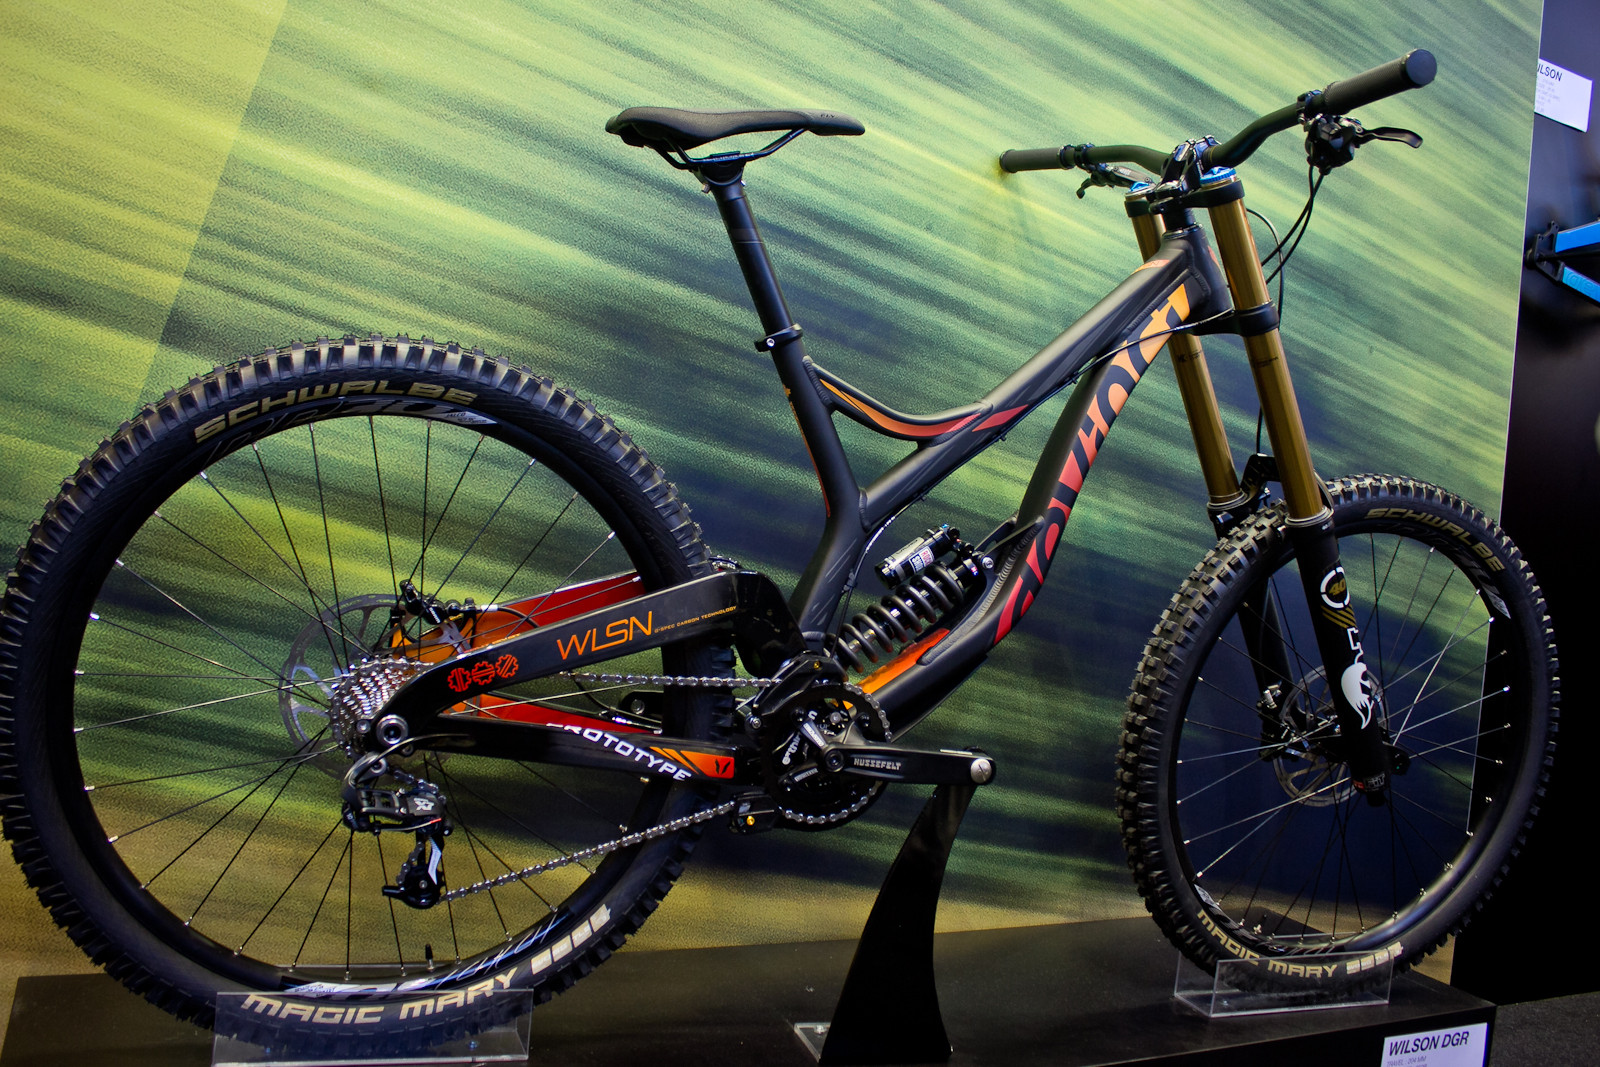 2015 Devinci Wilson 27.5 - 2015 Downhill Bikes at Eurobike 2014 - Mountain Biking Pictures - Vital MTB